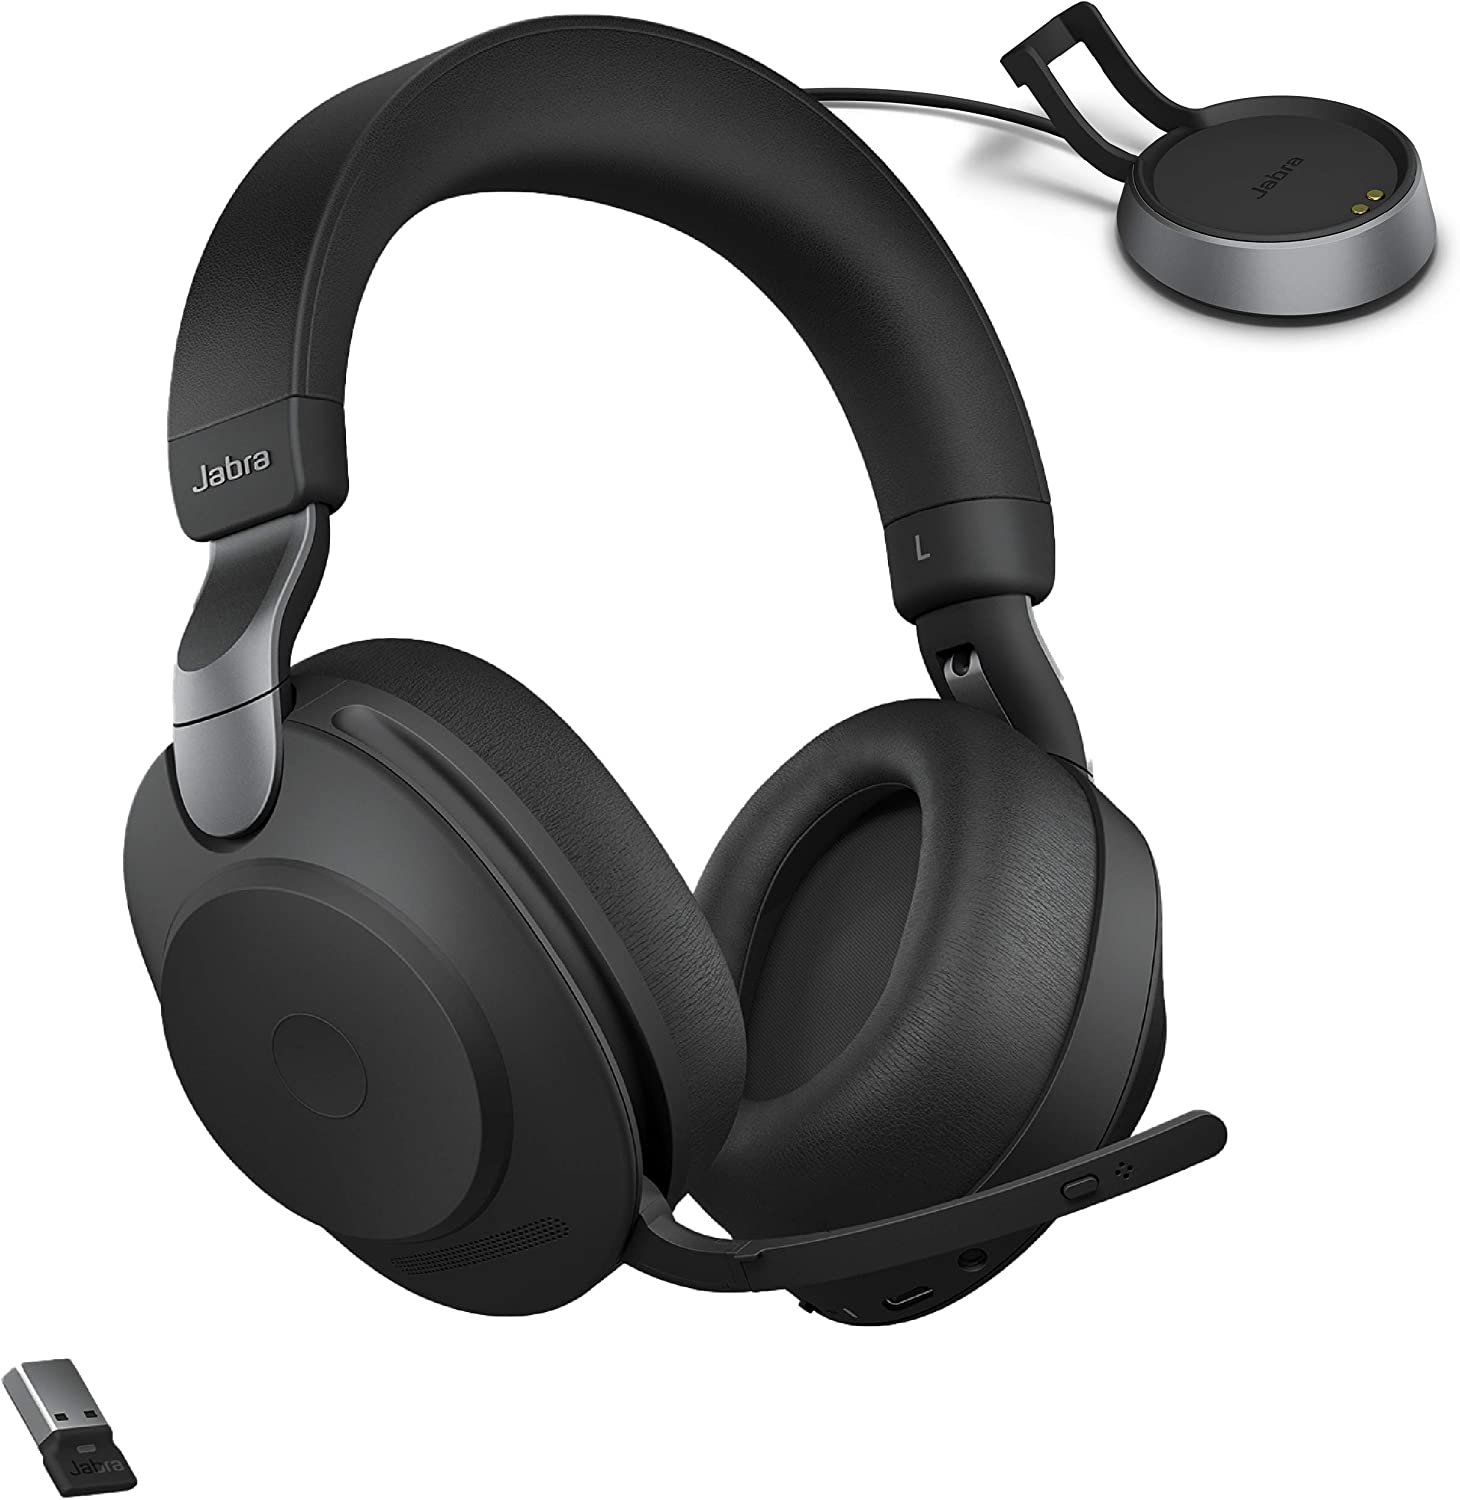 Jabra Evolve2 85 UC Wireless Headphones with Link380a & Charging Stand, Stereo, Black – Wireless Bluetooth Headset for Calls and Music, 37 Hours of Battery Life, Advanced Noise Cancelling Headphones